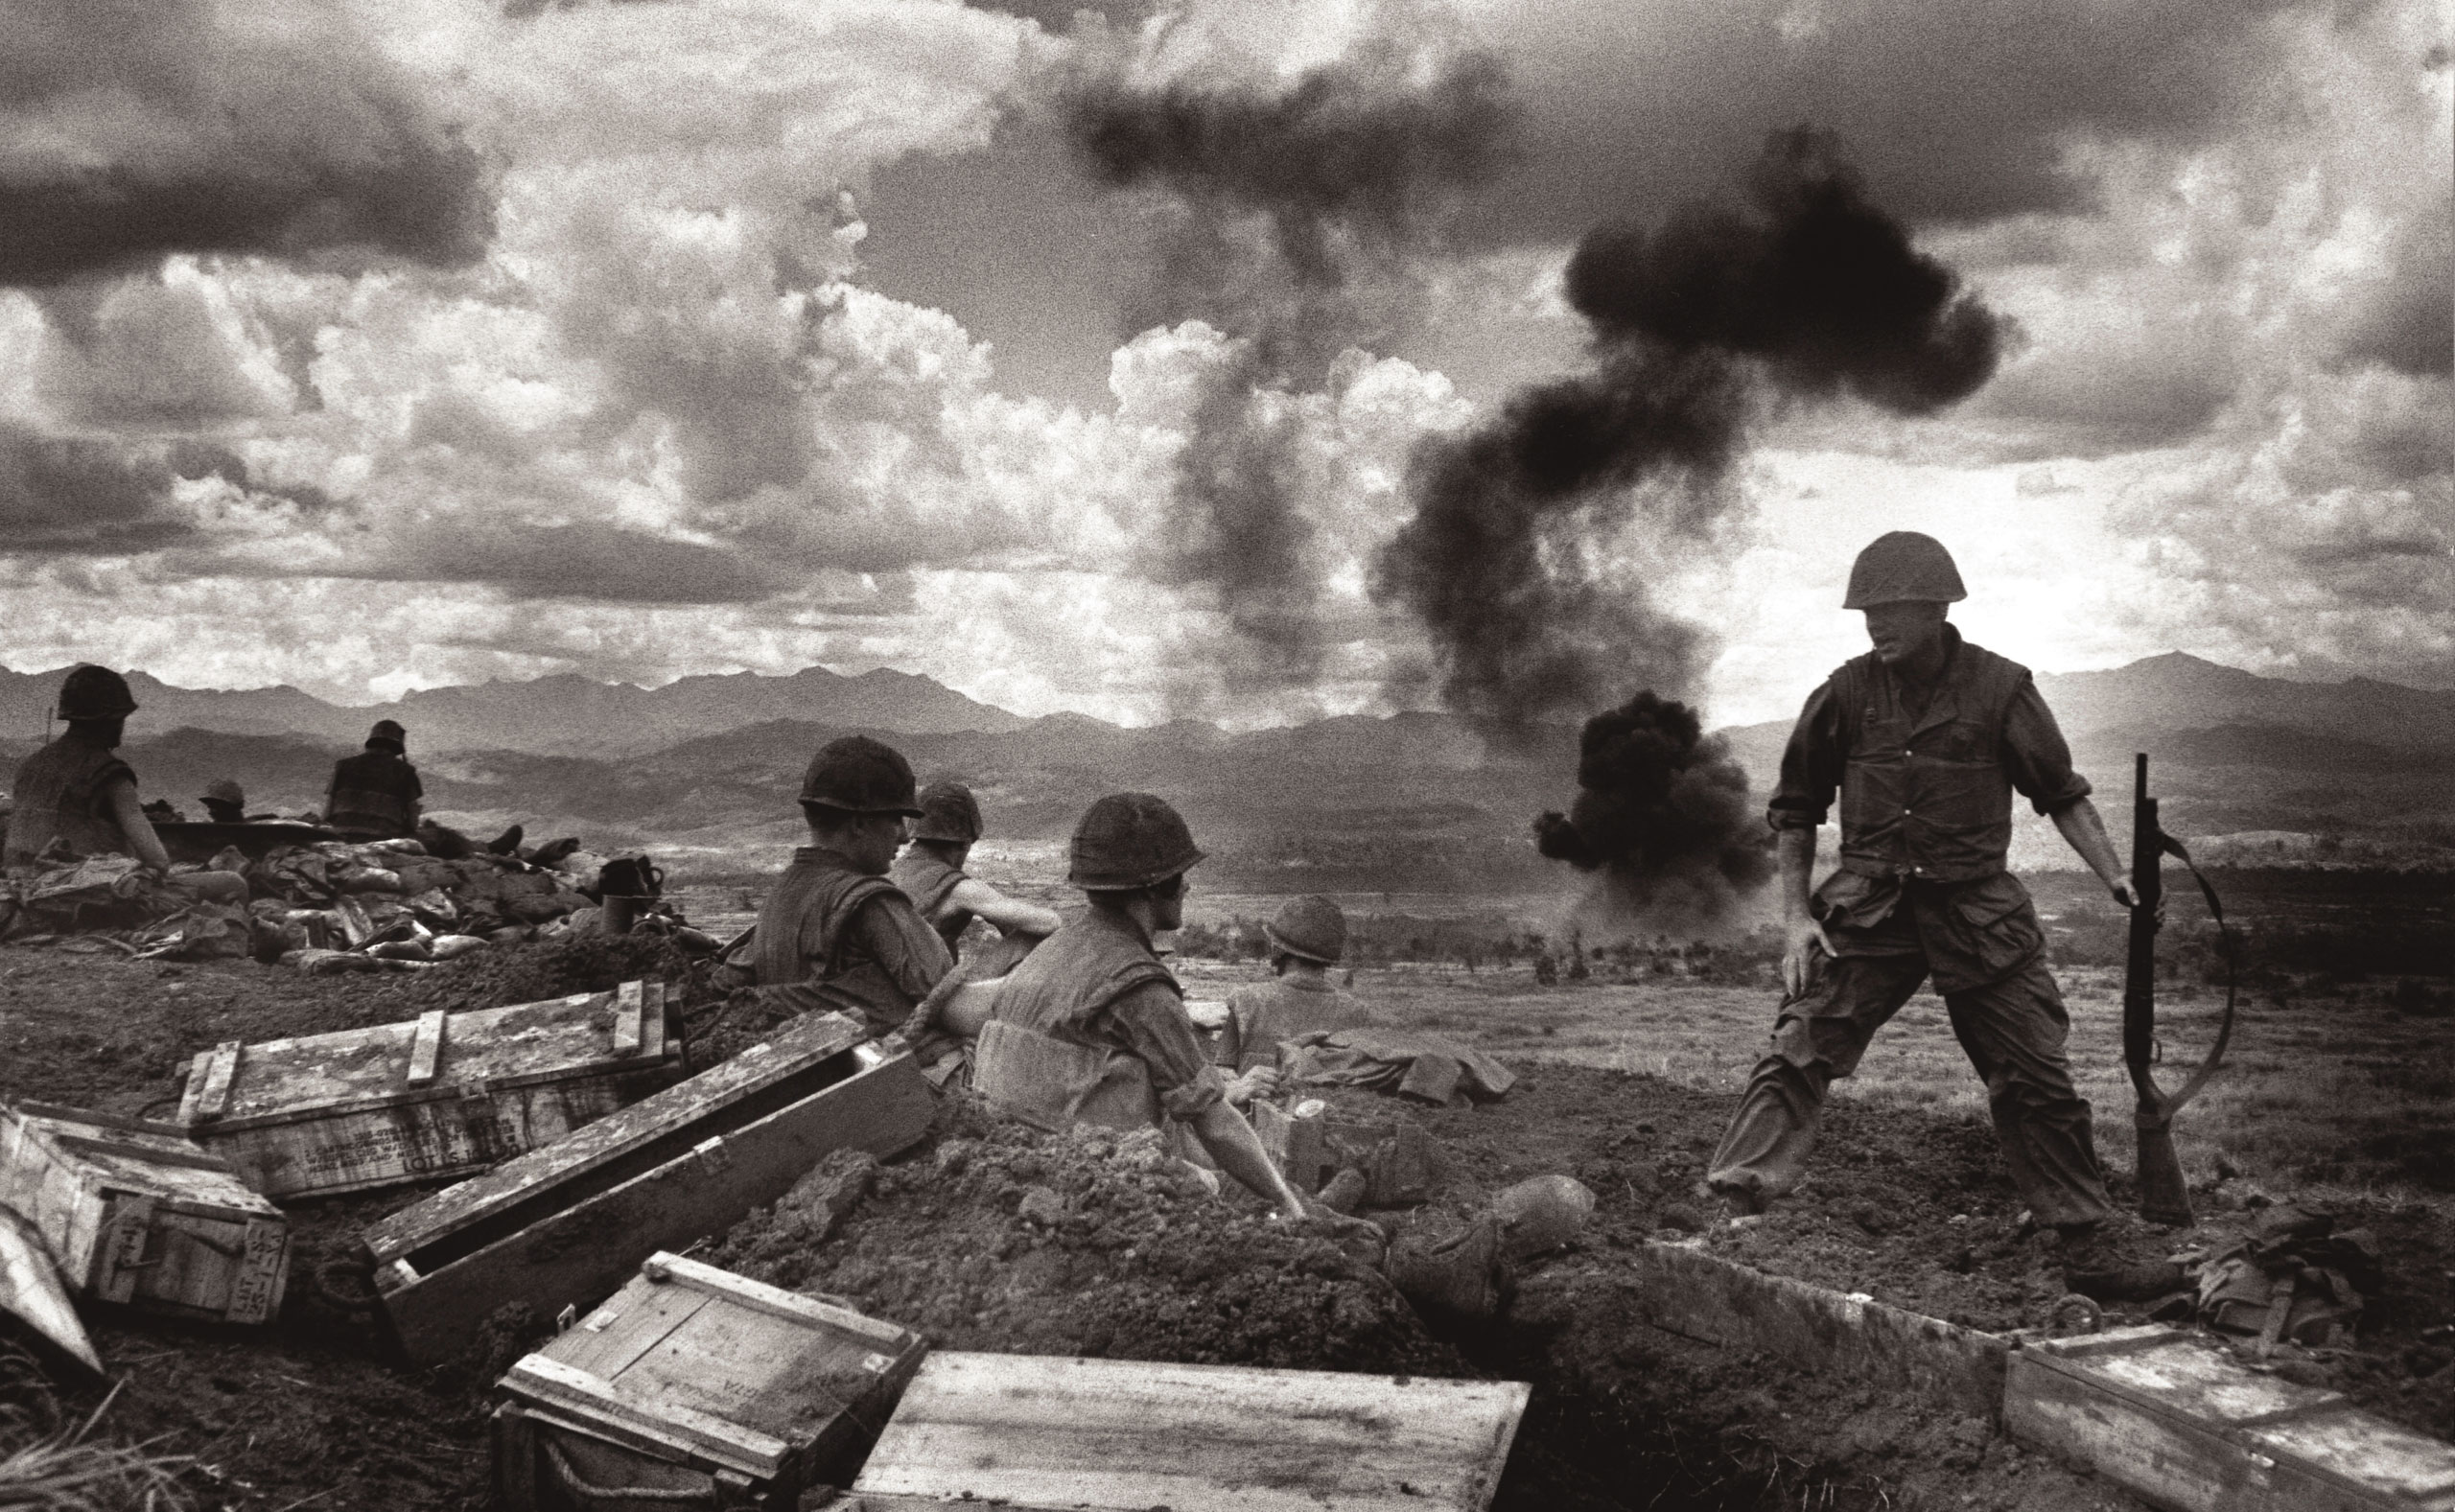 Marines holding hilltop facing enemy bombed nightly by B52s from Guam. Con Thien Vietnam, September 1967.